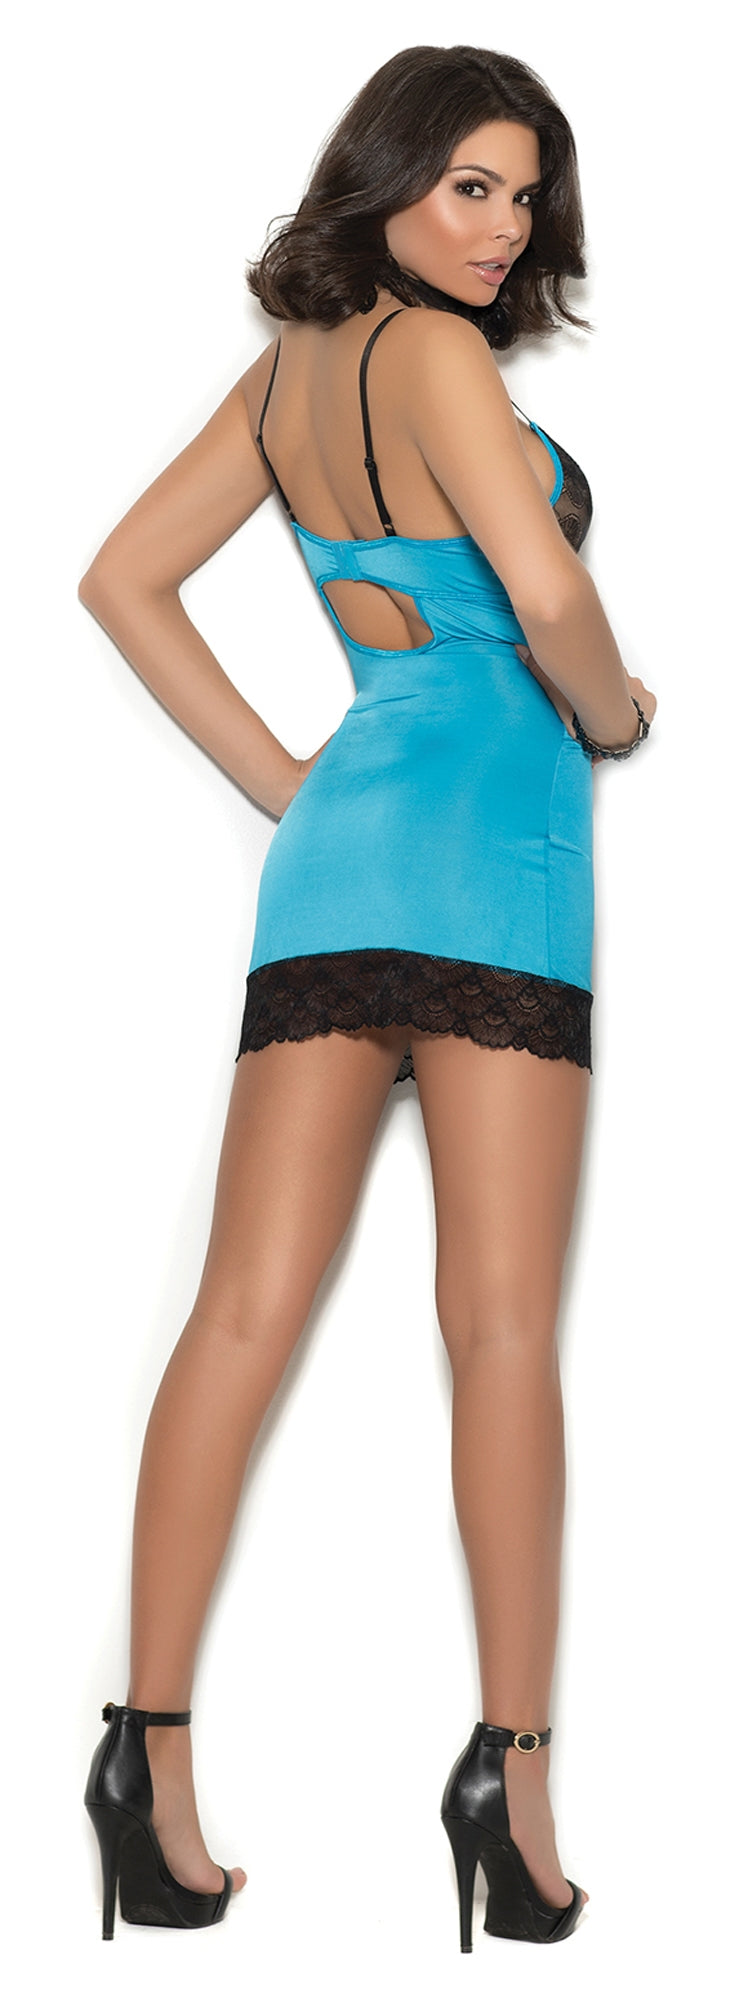 EM-4355 Satin chemise with lace underwire cups back